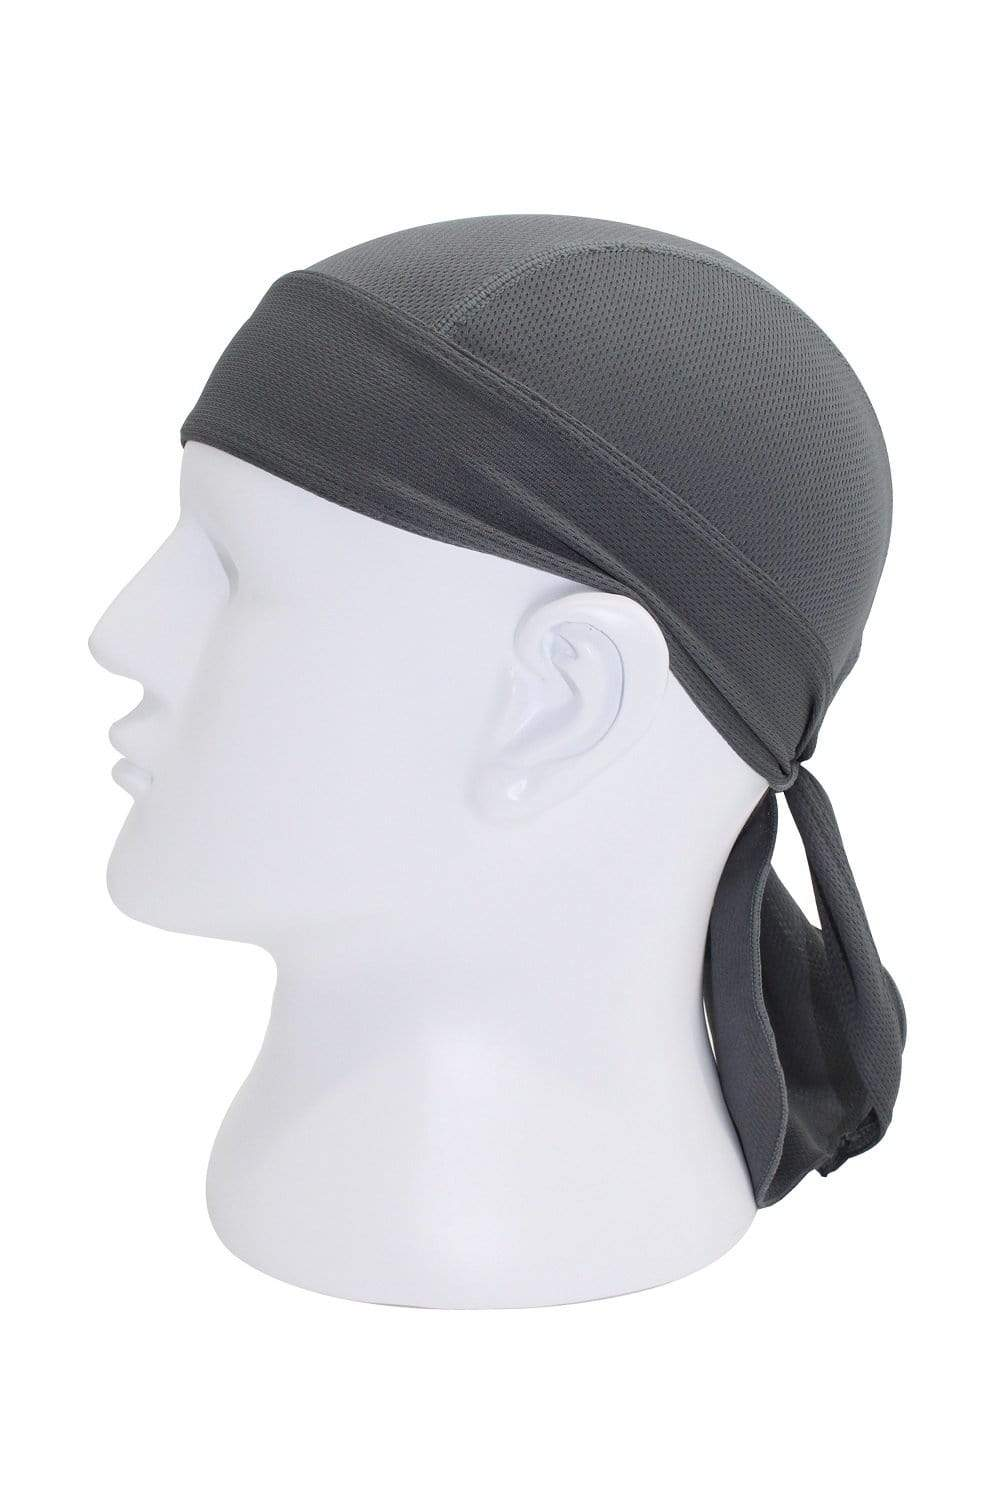 Moisture Wicking Cycling Head Wraps Cycling Cap Dark Gray MIER